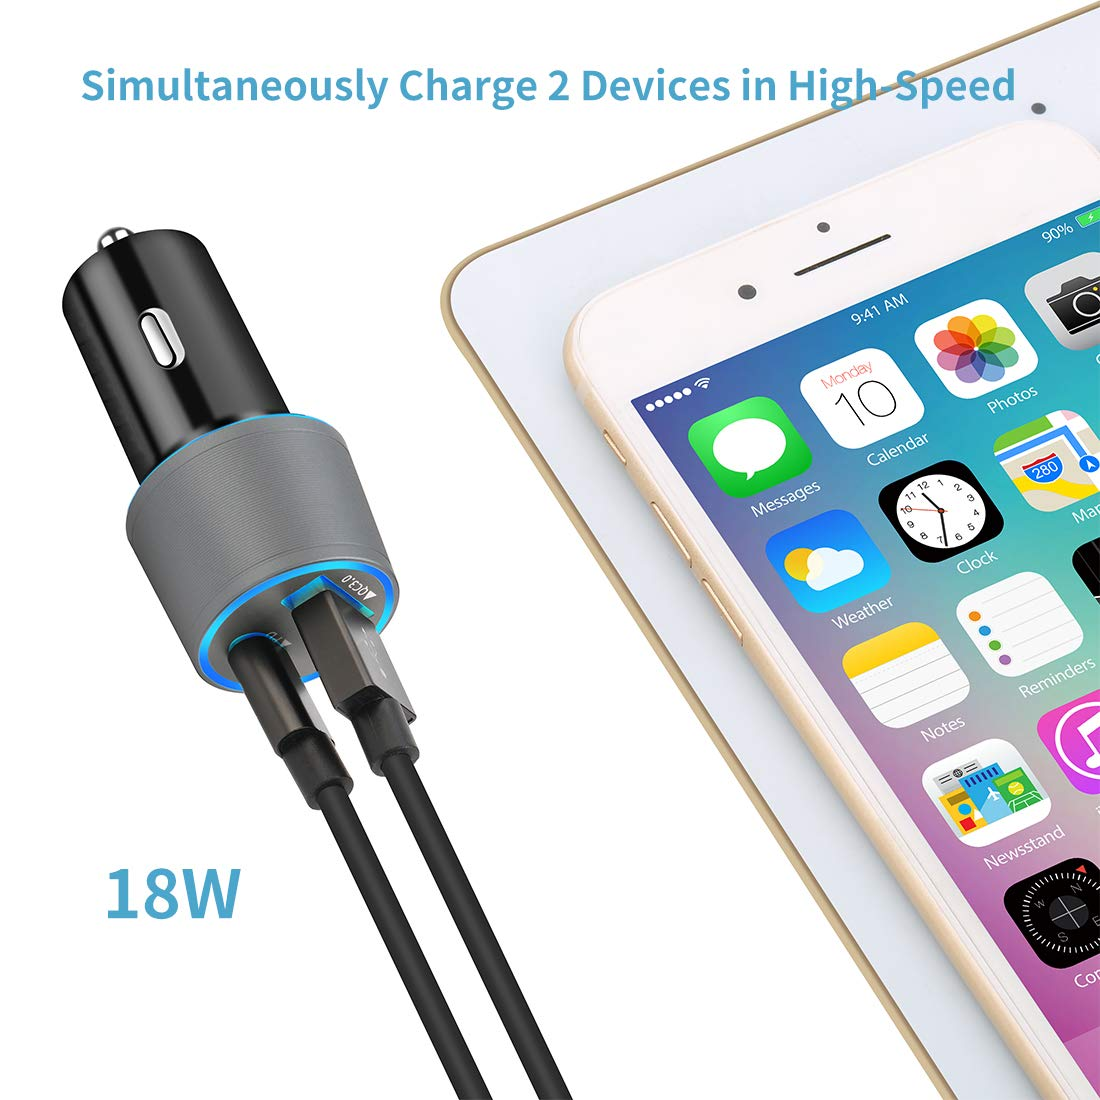 Compatible Google Pixel 3 XL//3//2//2 XL//XL//C 18W Power Delivery and Quick Charge 3.0 Fast Charging Car Adapter ChiRui CC003 Rapid Type C Car Charger USB C PD Car Charger with 3.3ft Type C Cable